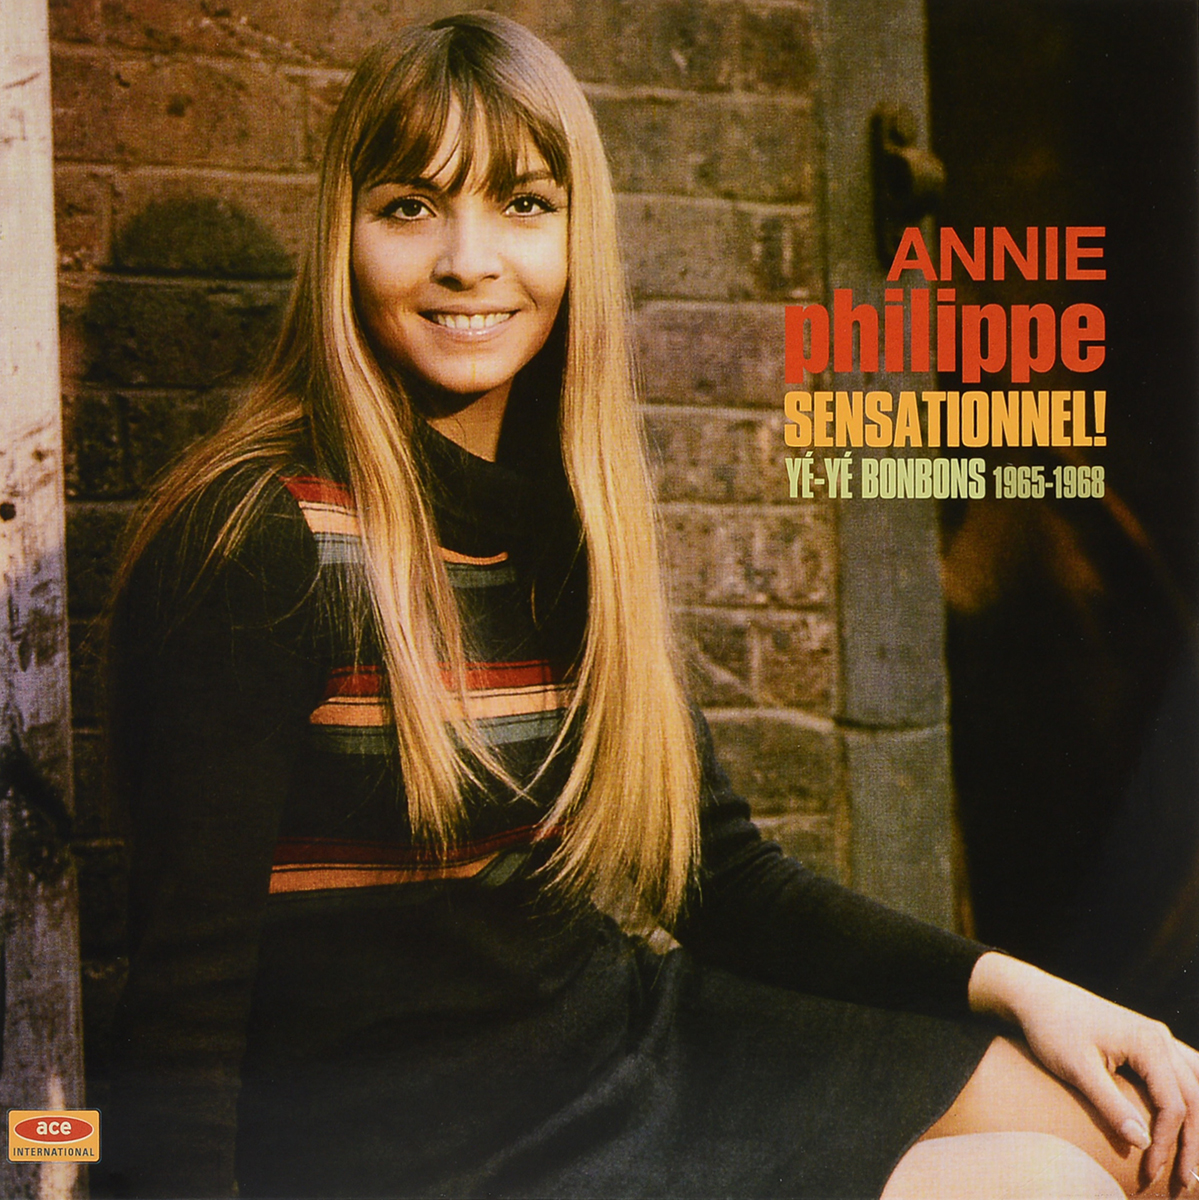 Анни Филипп Annie Philippe. Sensationnel! Ye-Ye Bonbons 1965-1968 (LP) motor ace motor ace five star laundry 2 lp